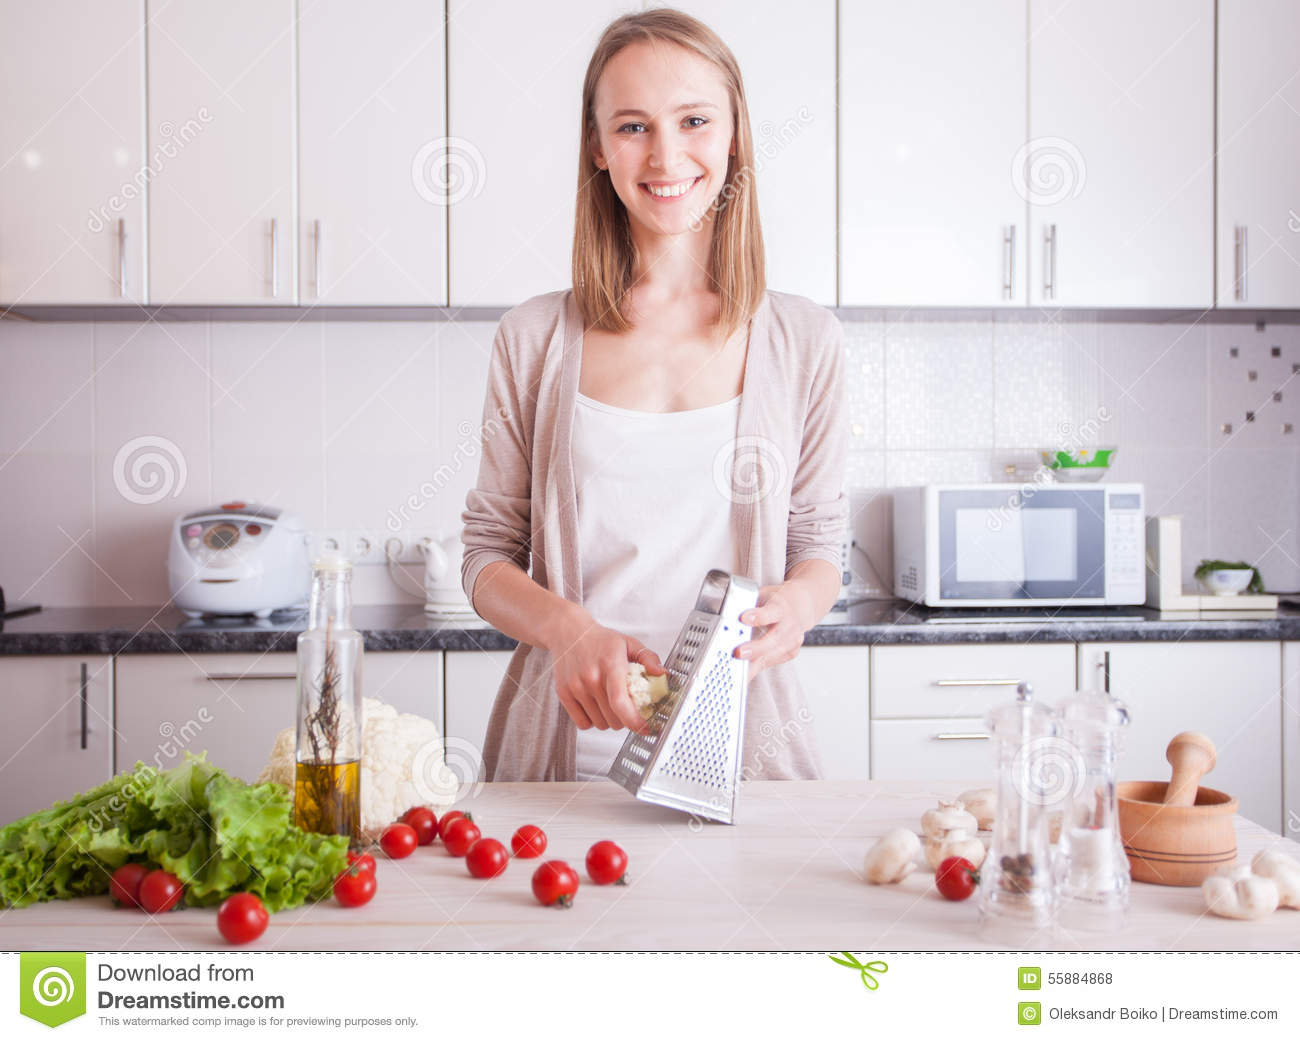 woman making healthy food in kitchen stock photo image of cheerful